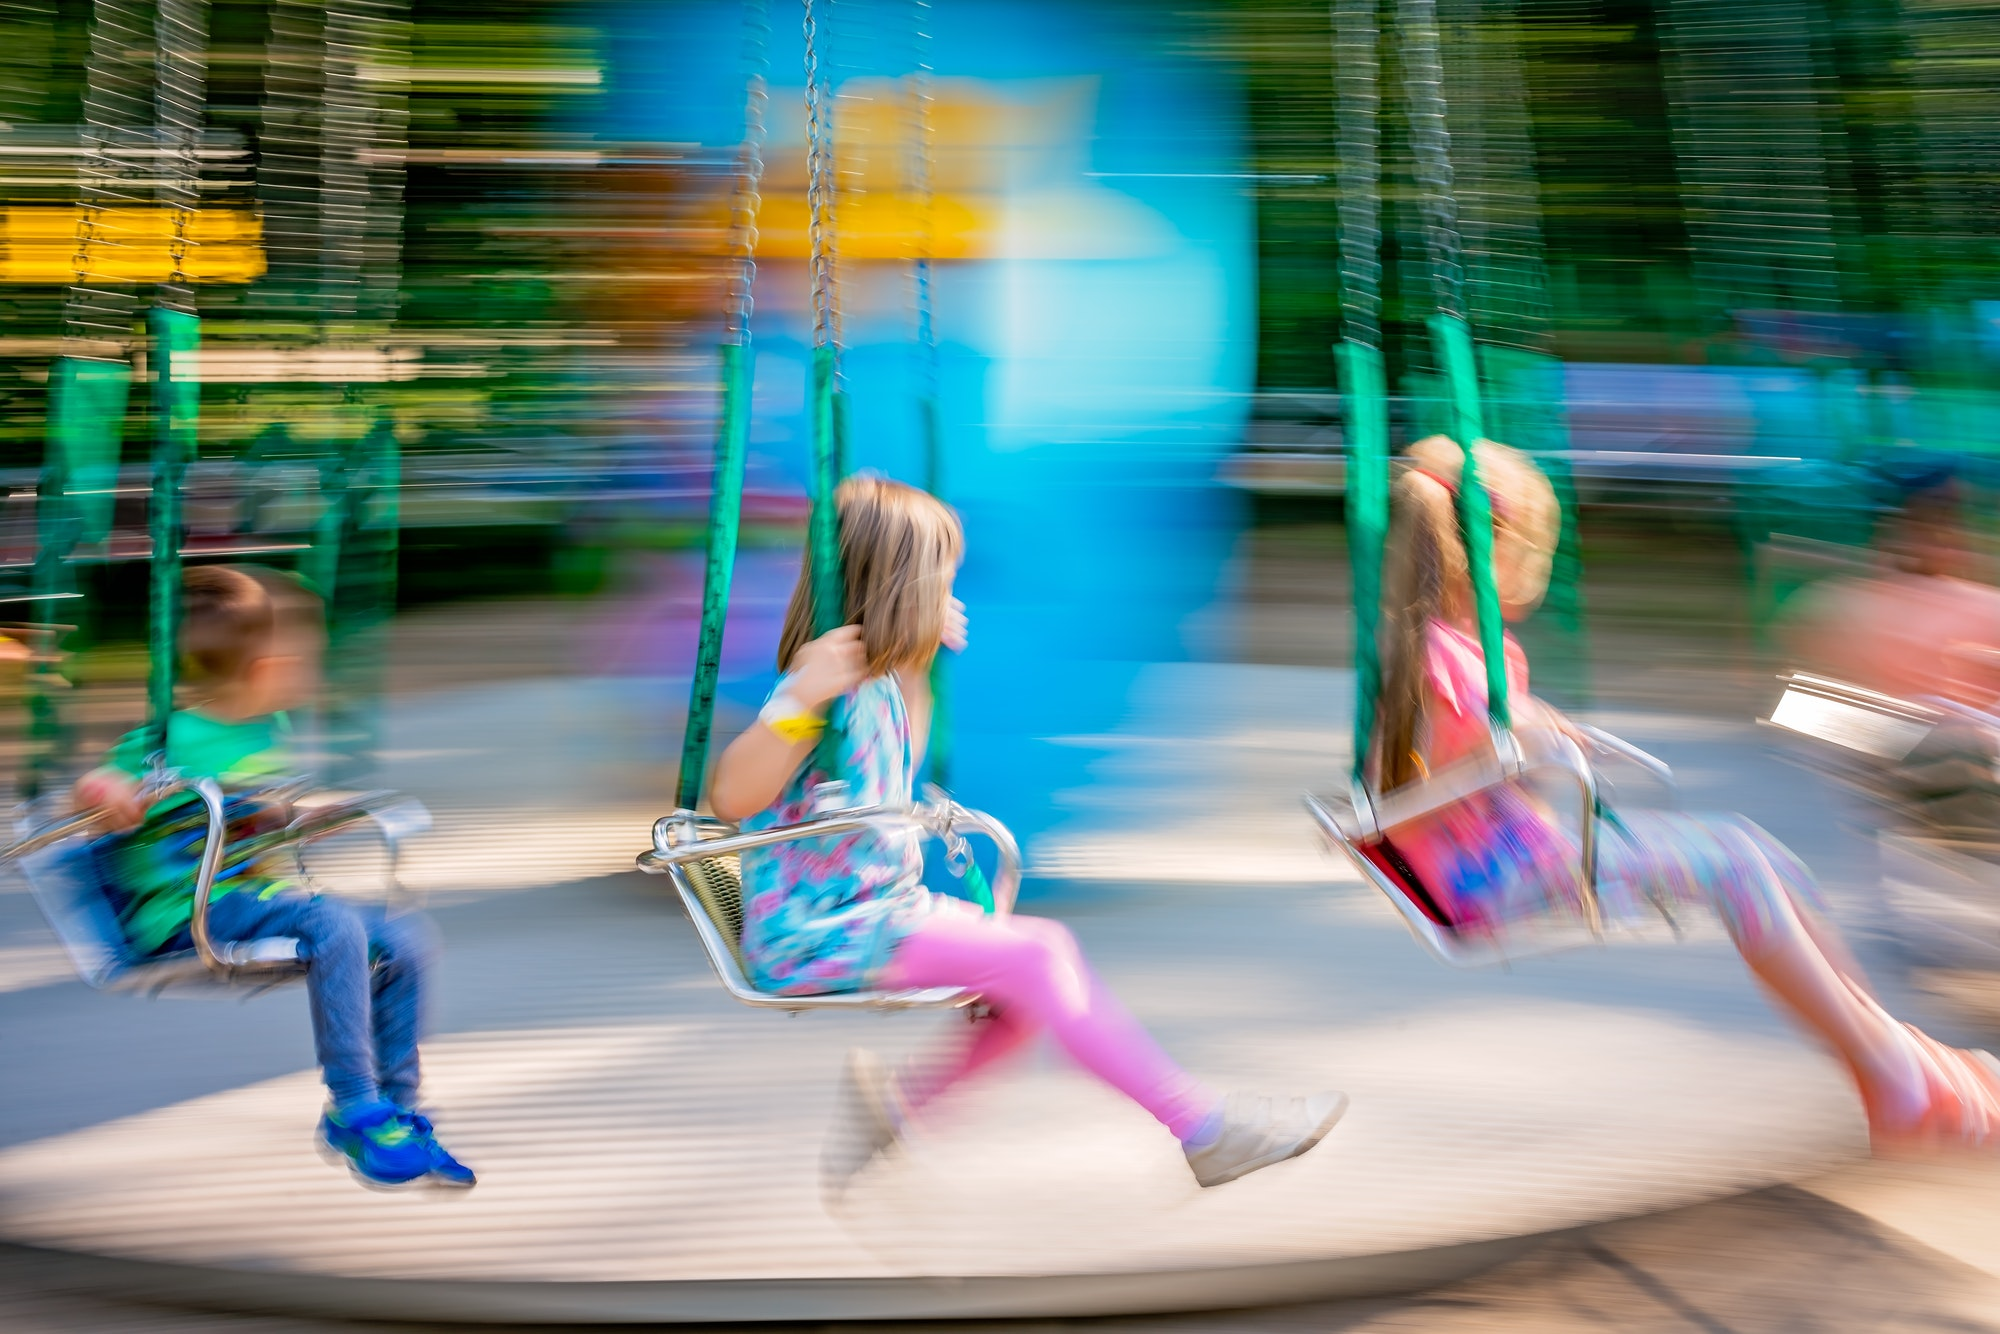 Children on a carousel